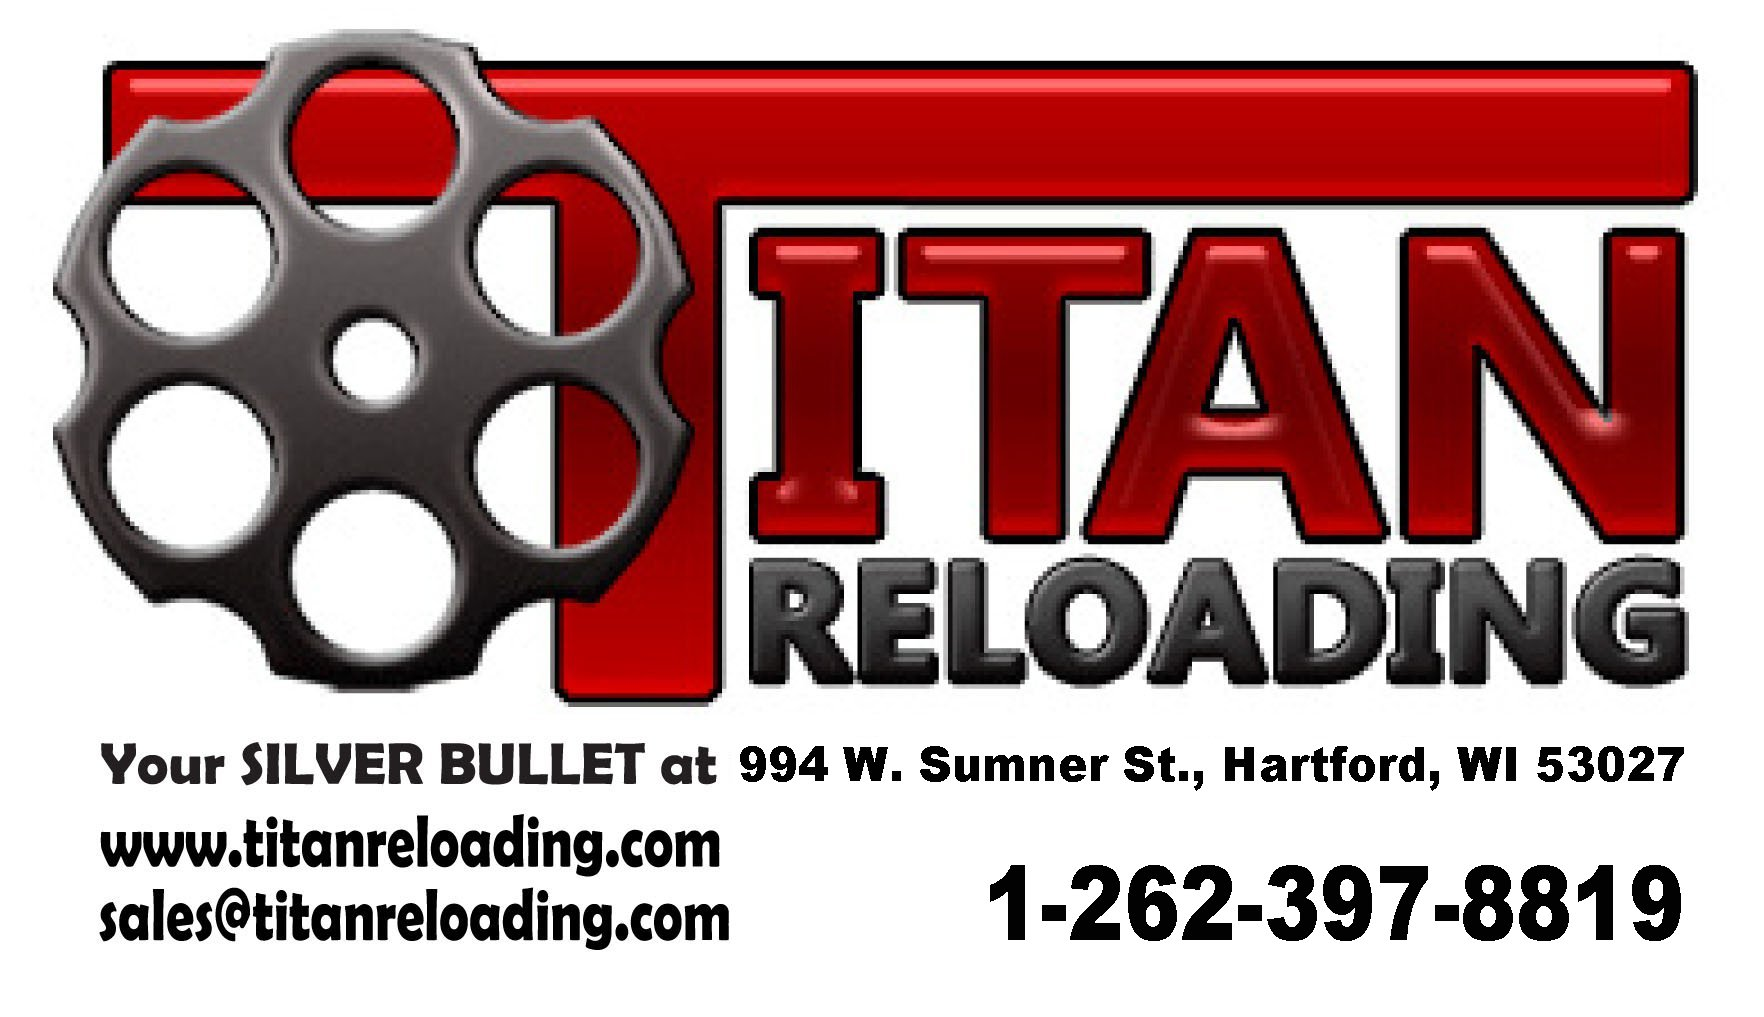 Titan Reloading Products